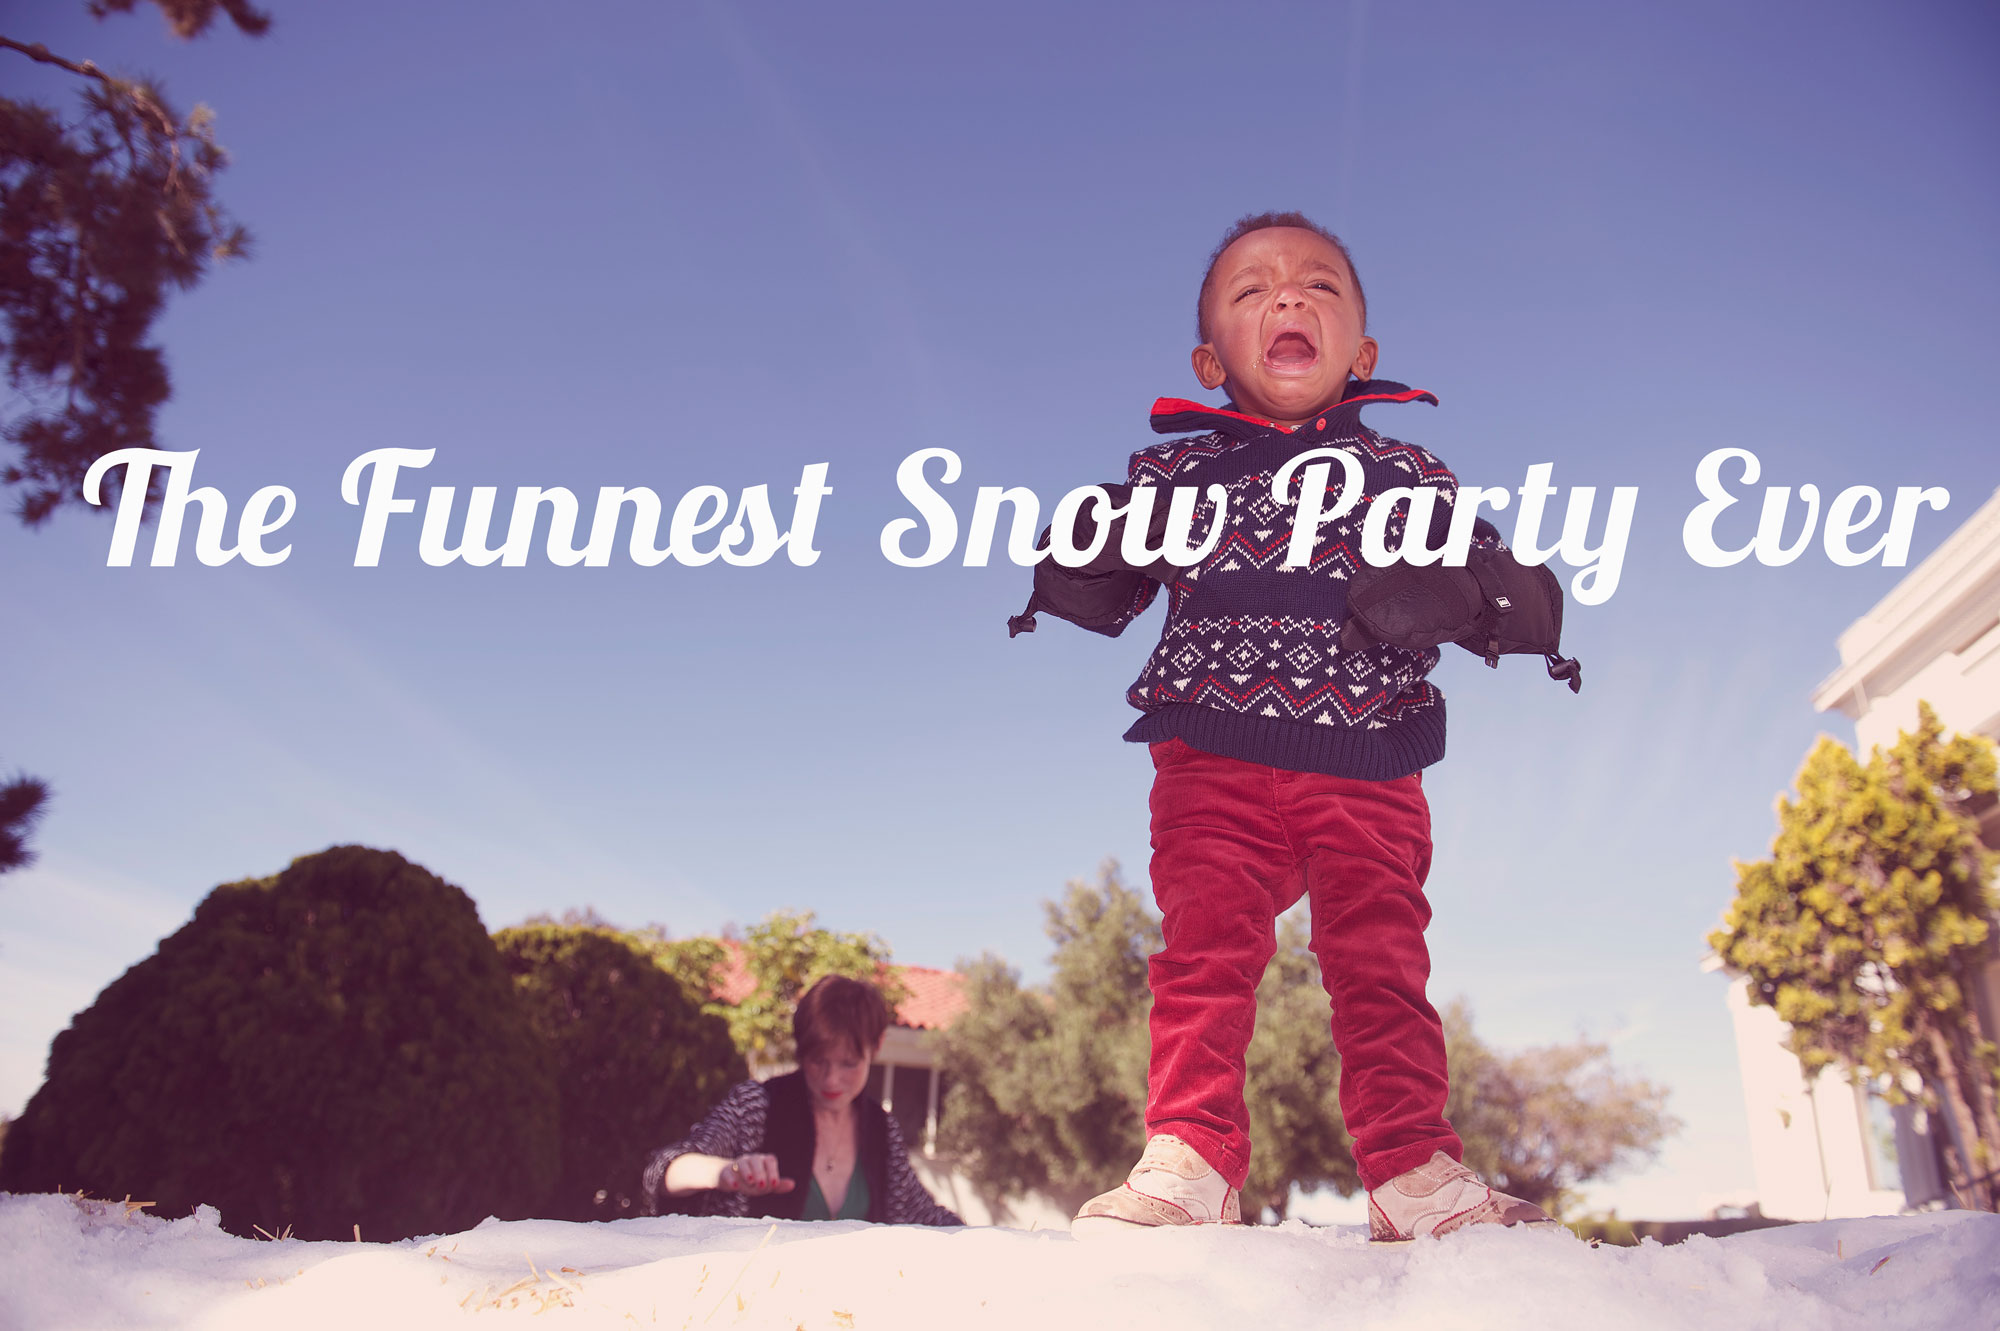 Funnest-snow-party-ever1